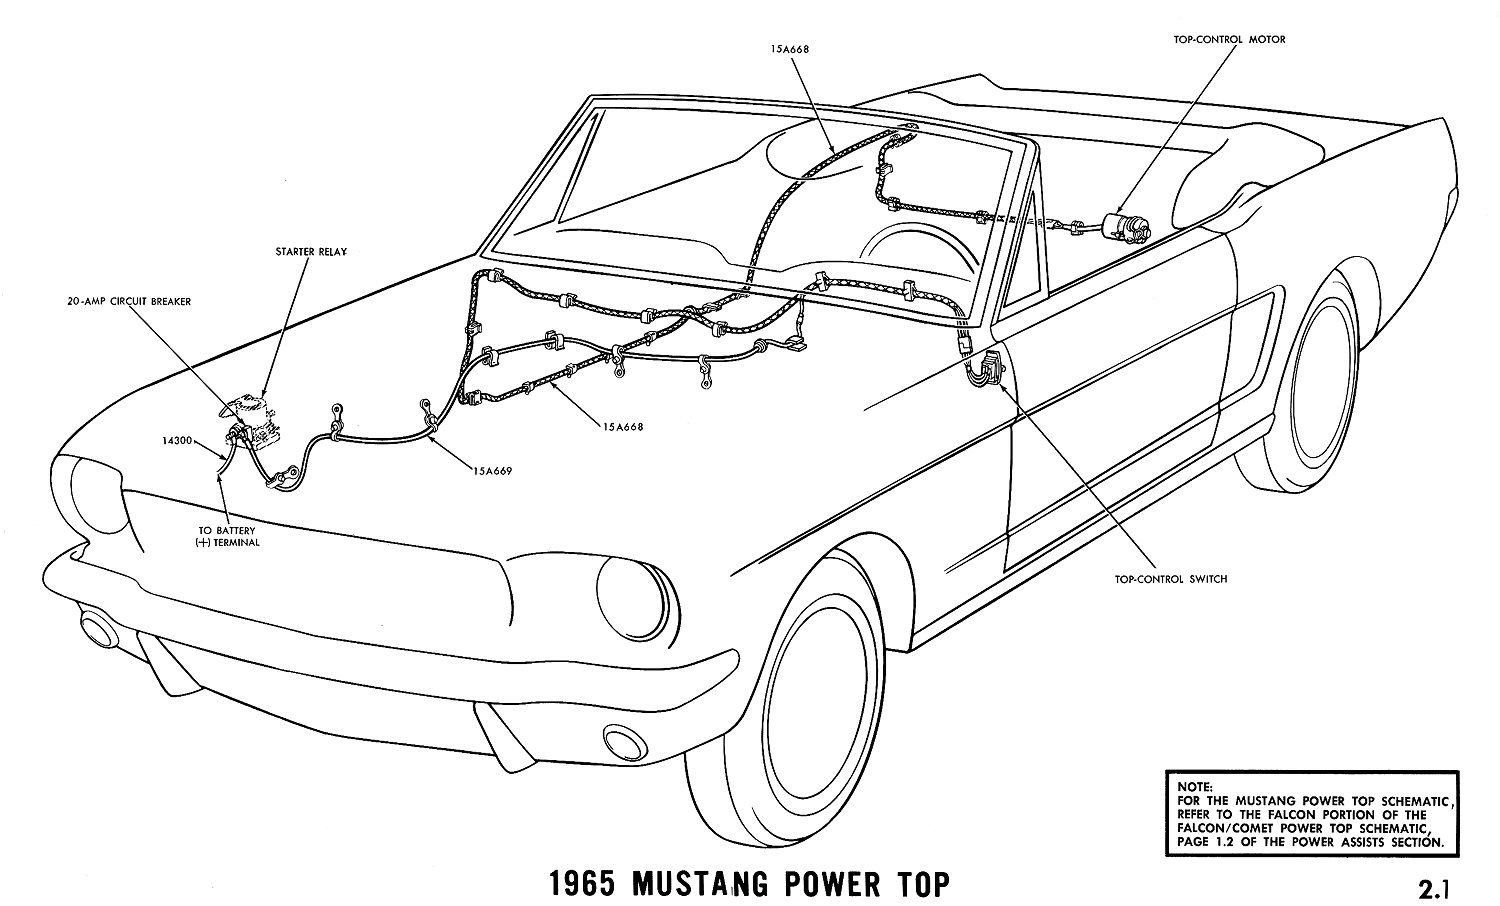 1965j 1965 mustang wiring diagrams average joe restoration 1971 Thunderbird Interior at mifinder.co